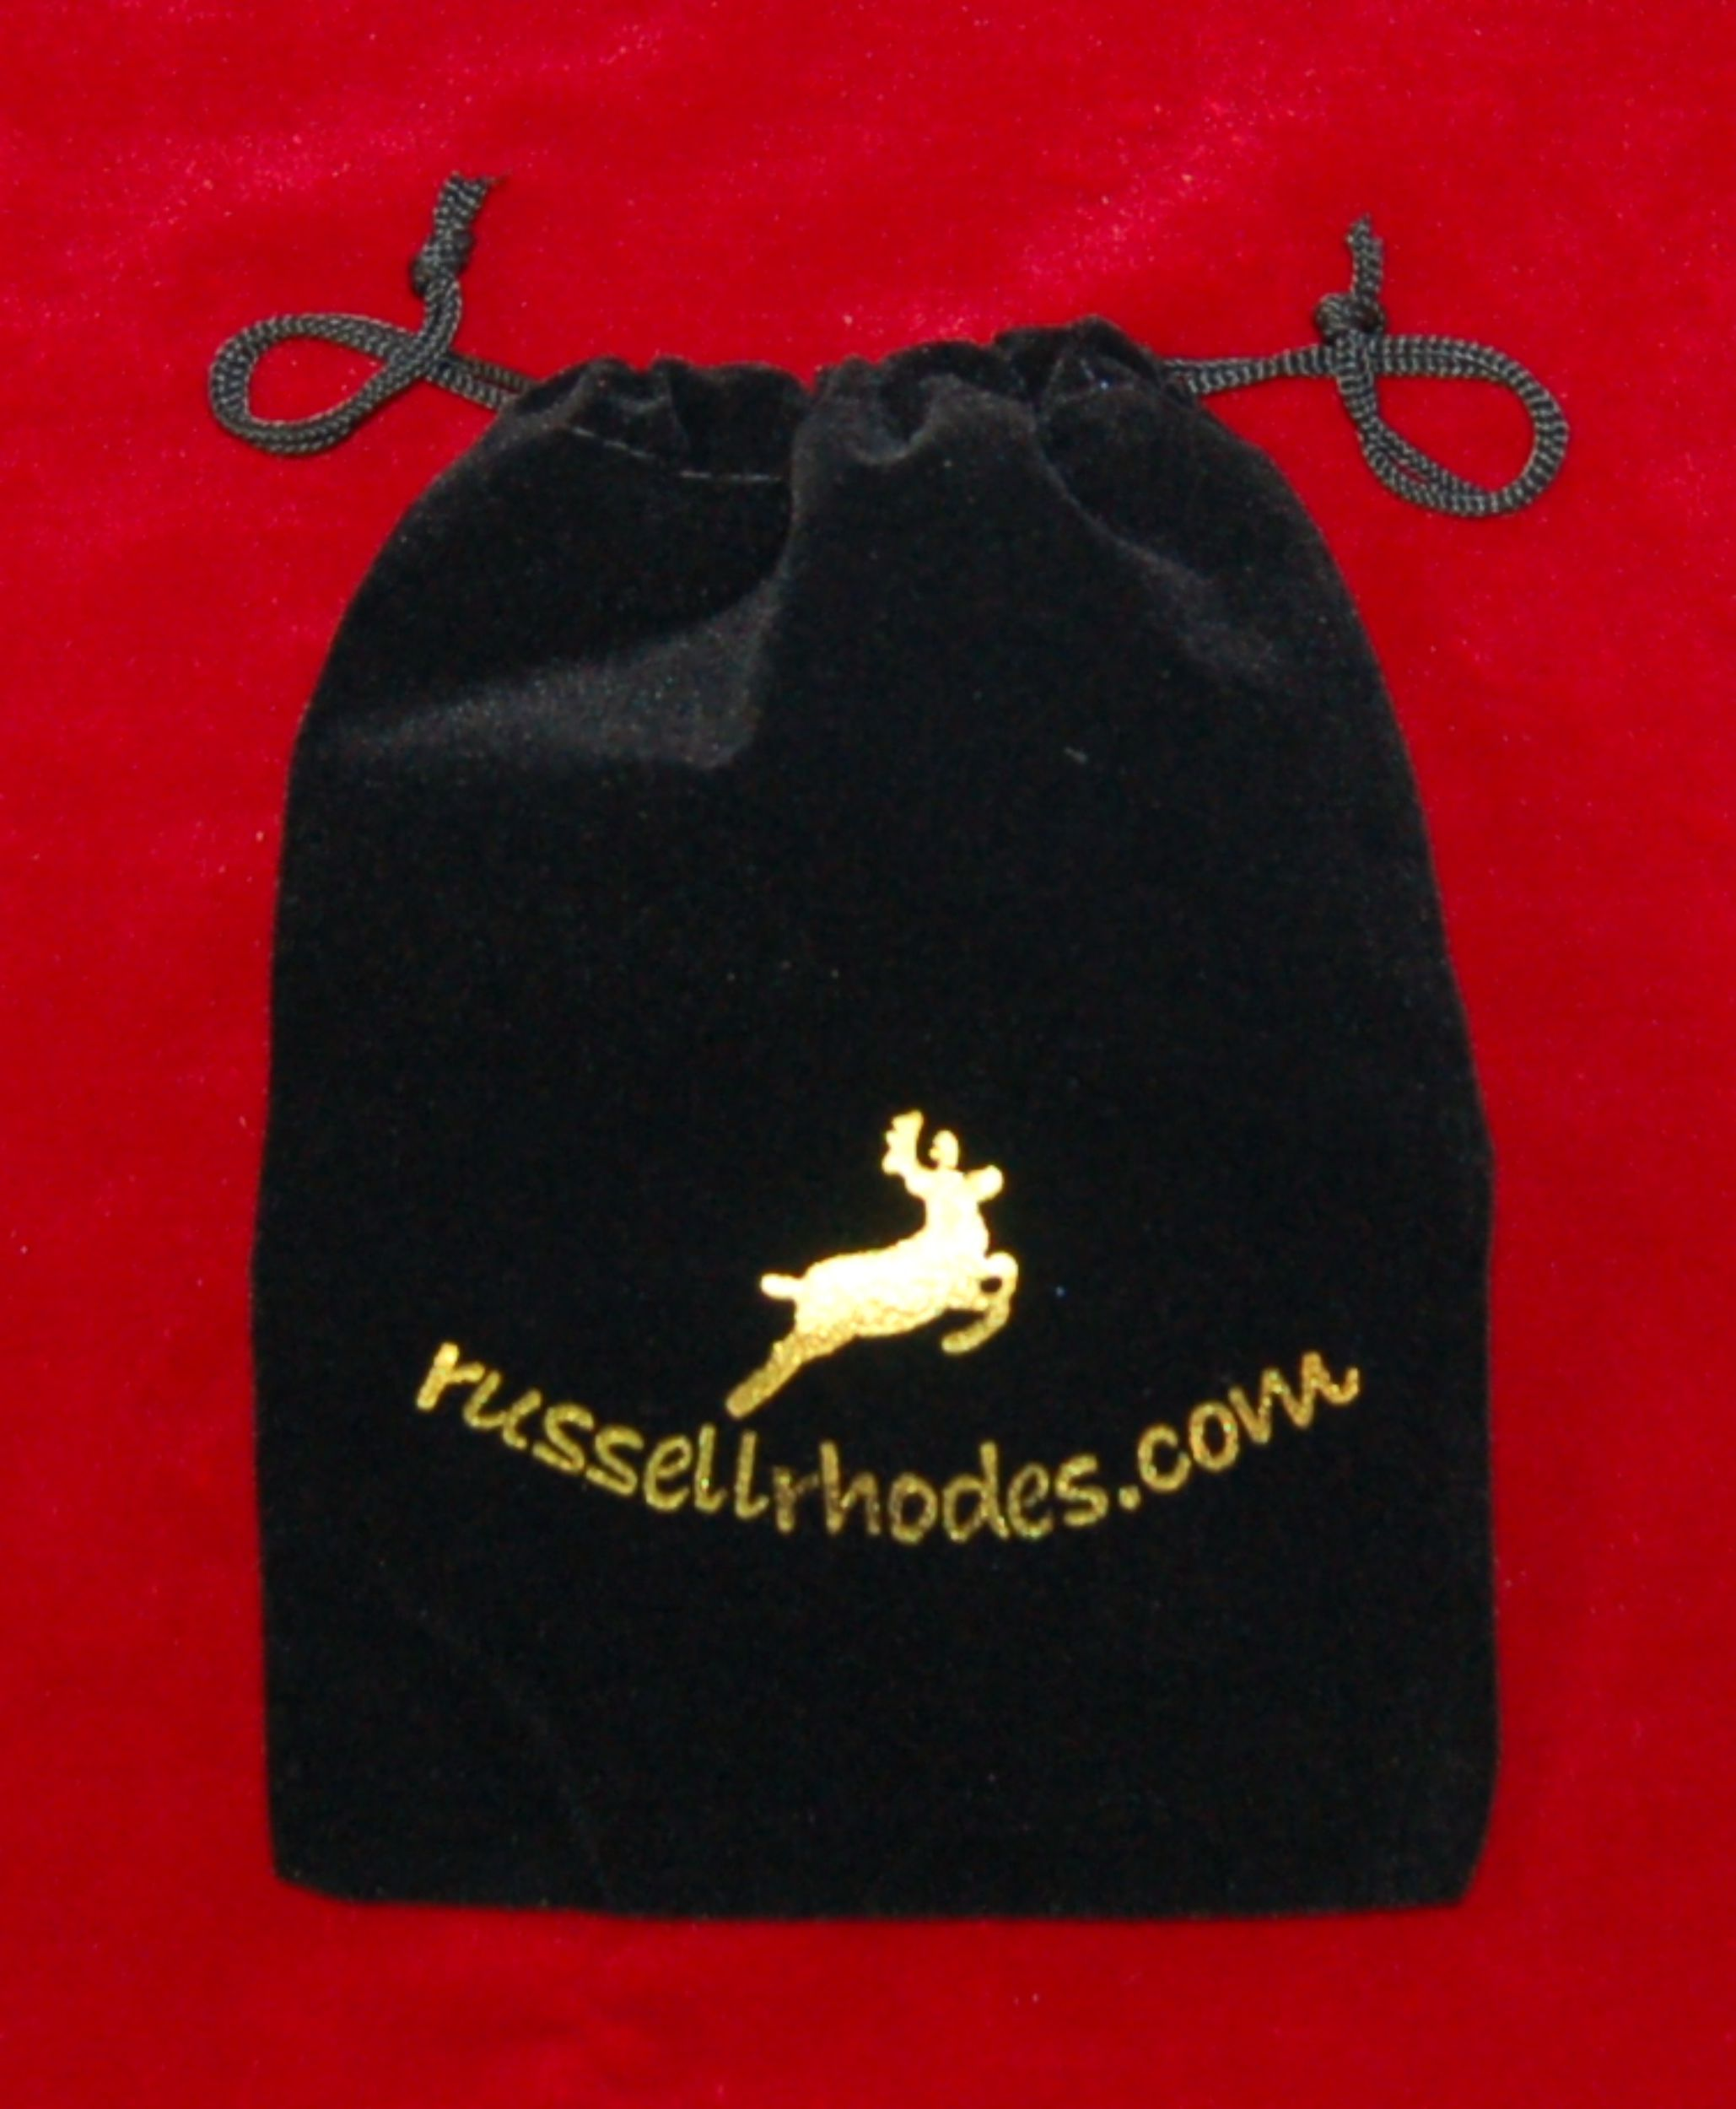 Christmas Ornament Bag 6 by Russell Rhodes